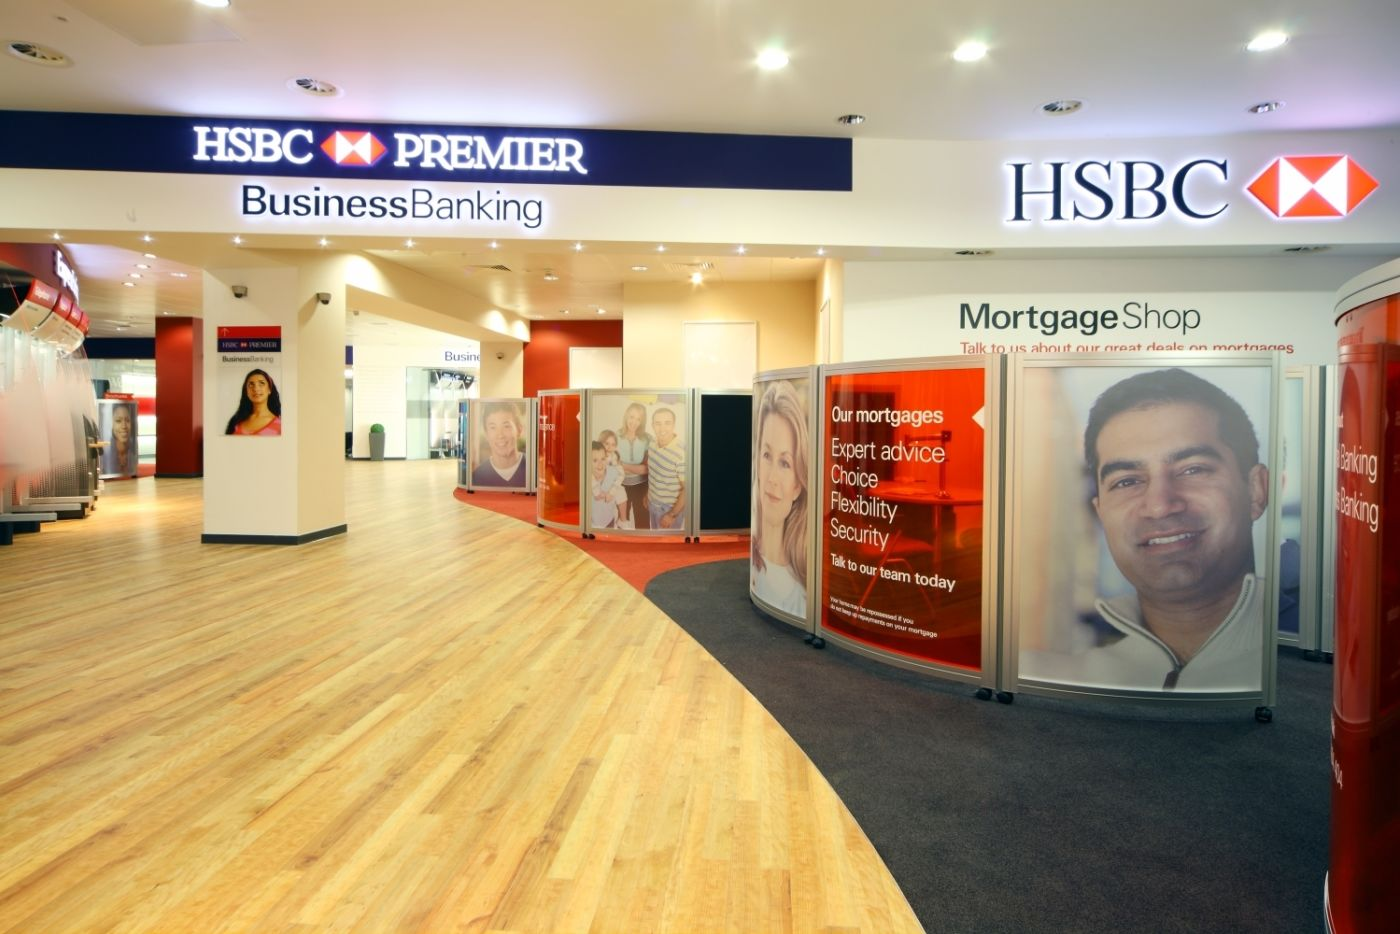 Retail desks in HSBC bank fit out